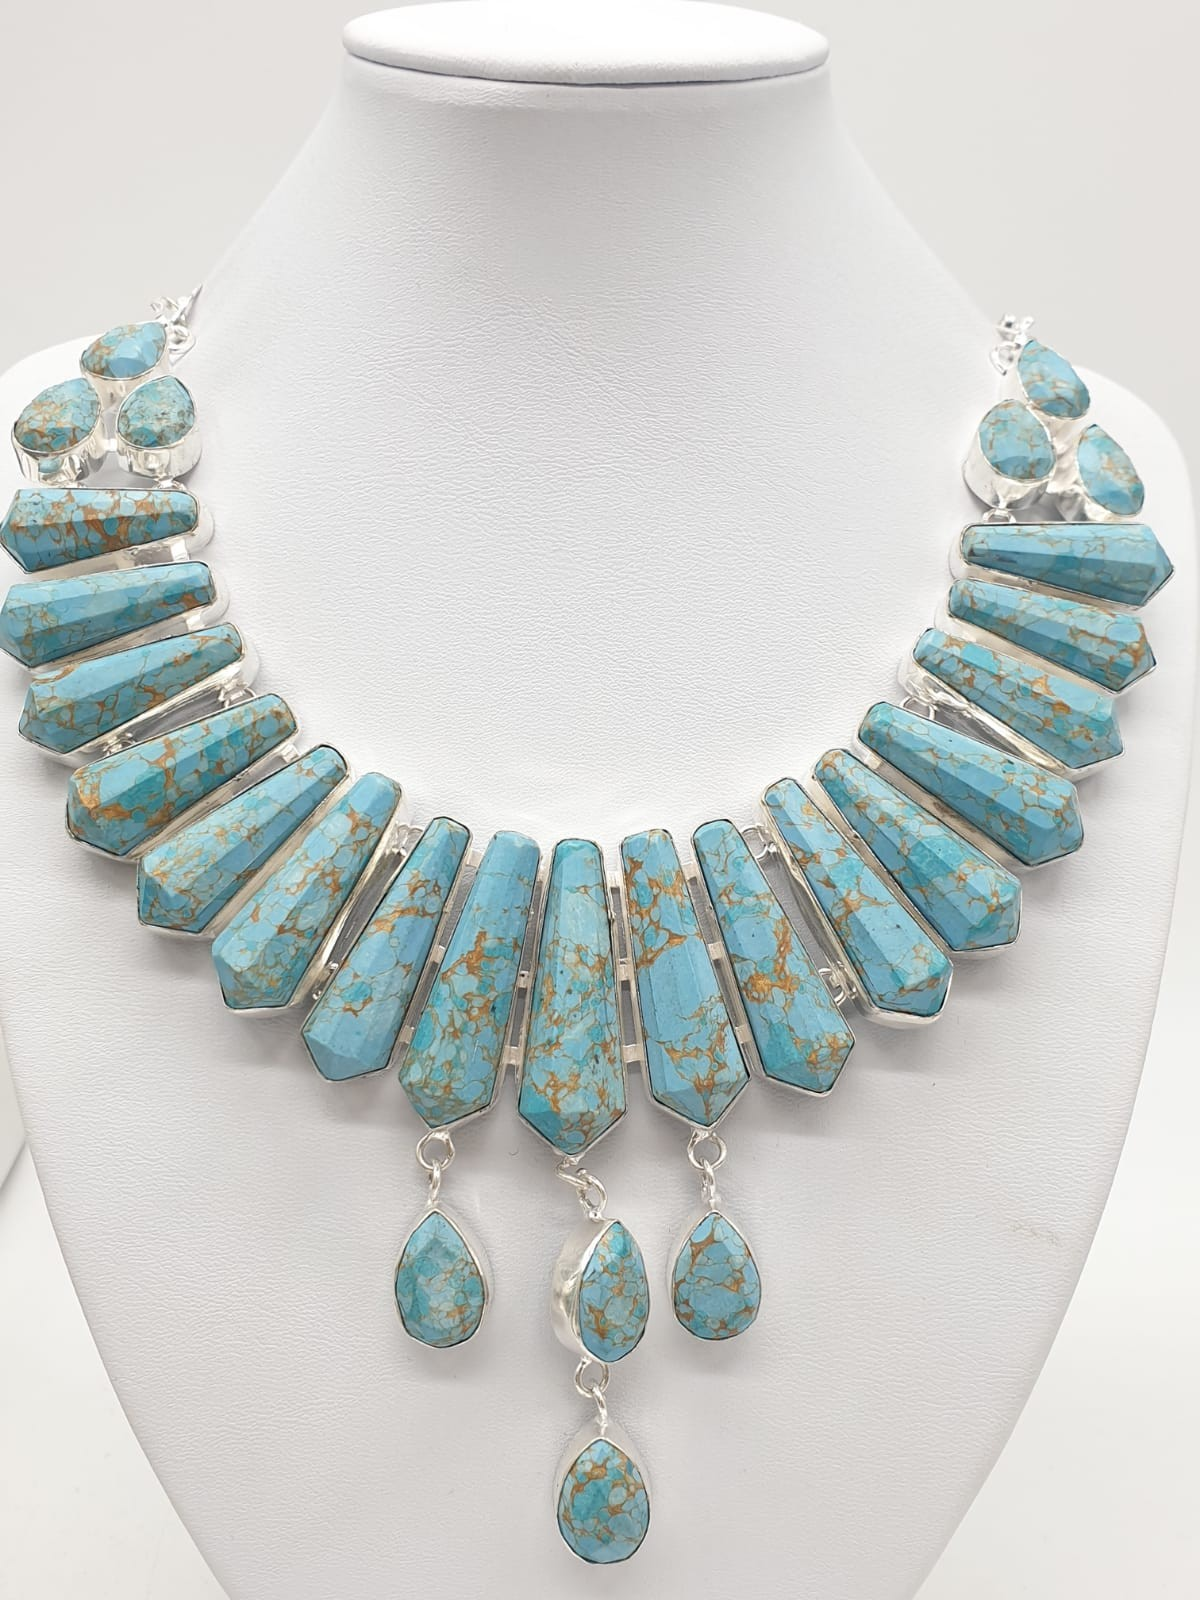 A Pharaonic style necklace and earrings set with light brown-gold veined turquoise obelisks and - Image 3 of 24